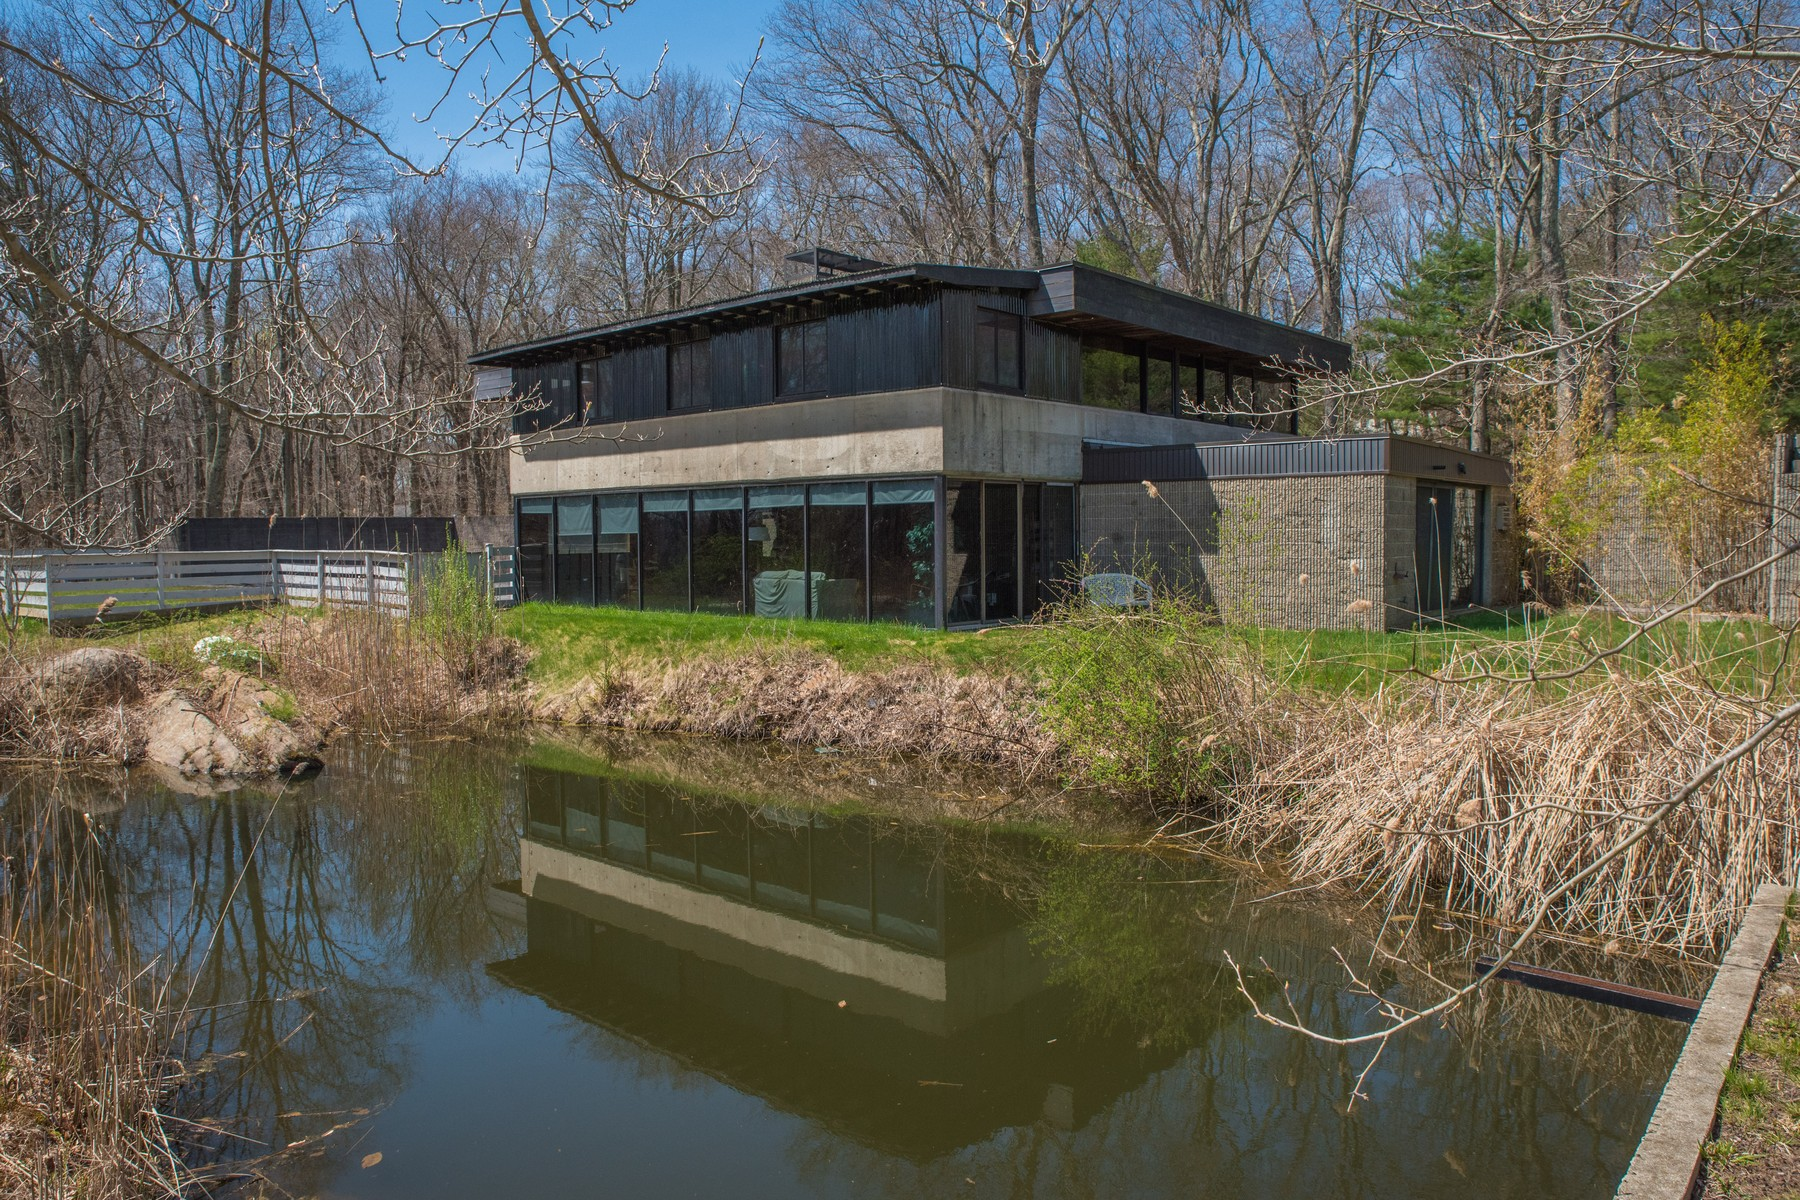 Casa Unifamiliar por un Venta en Unique contemporary listed on the Connecticut Landmark homes list 3 Bill Hill Rd #b Old Lyme, Connecticut, 06371 Estados Unidos